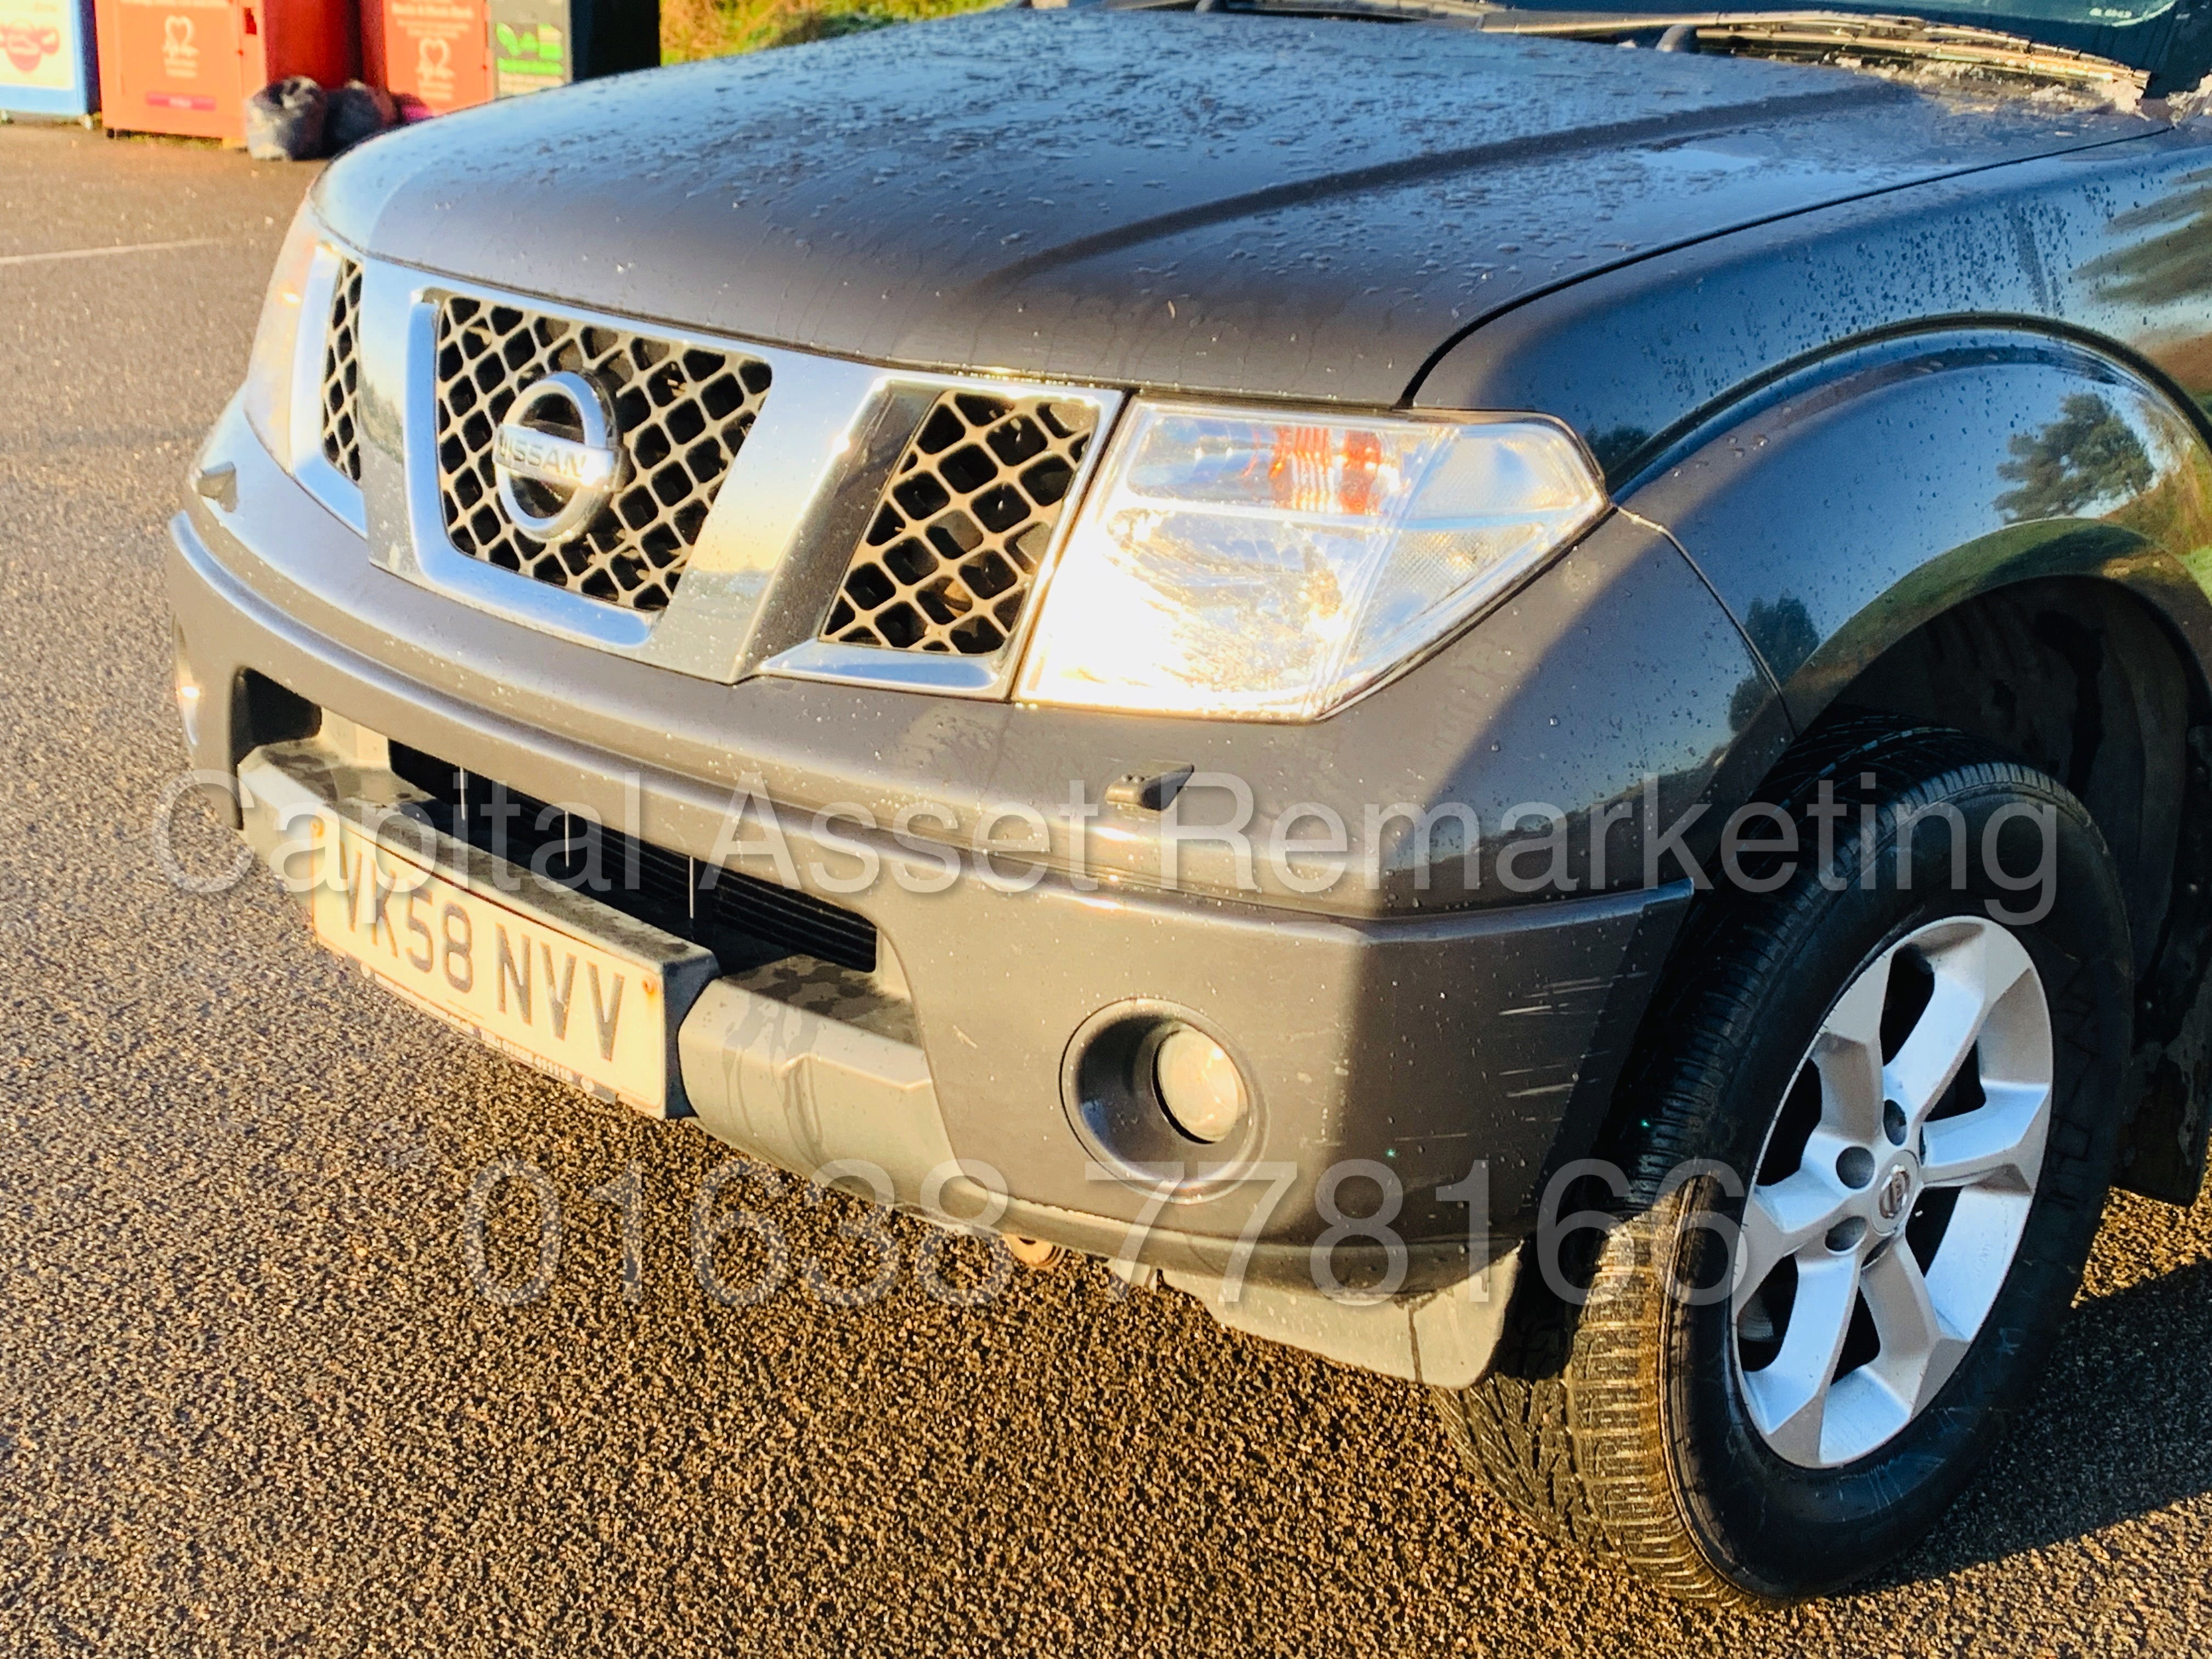 NISSAN NAVARA *OUTLAW* DOUBLE CAB PICK-UP *4X4* (2009) '2.5 DCI-171 BHP- 6 SPEED' *AIR CON* (NO VAT) - Image 15 of 42